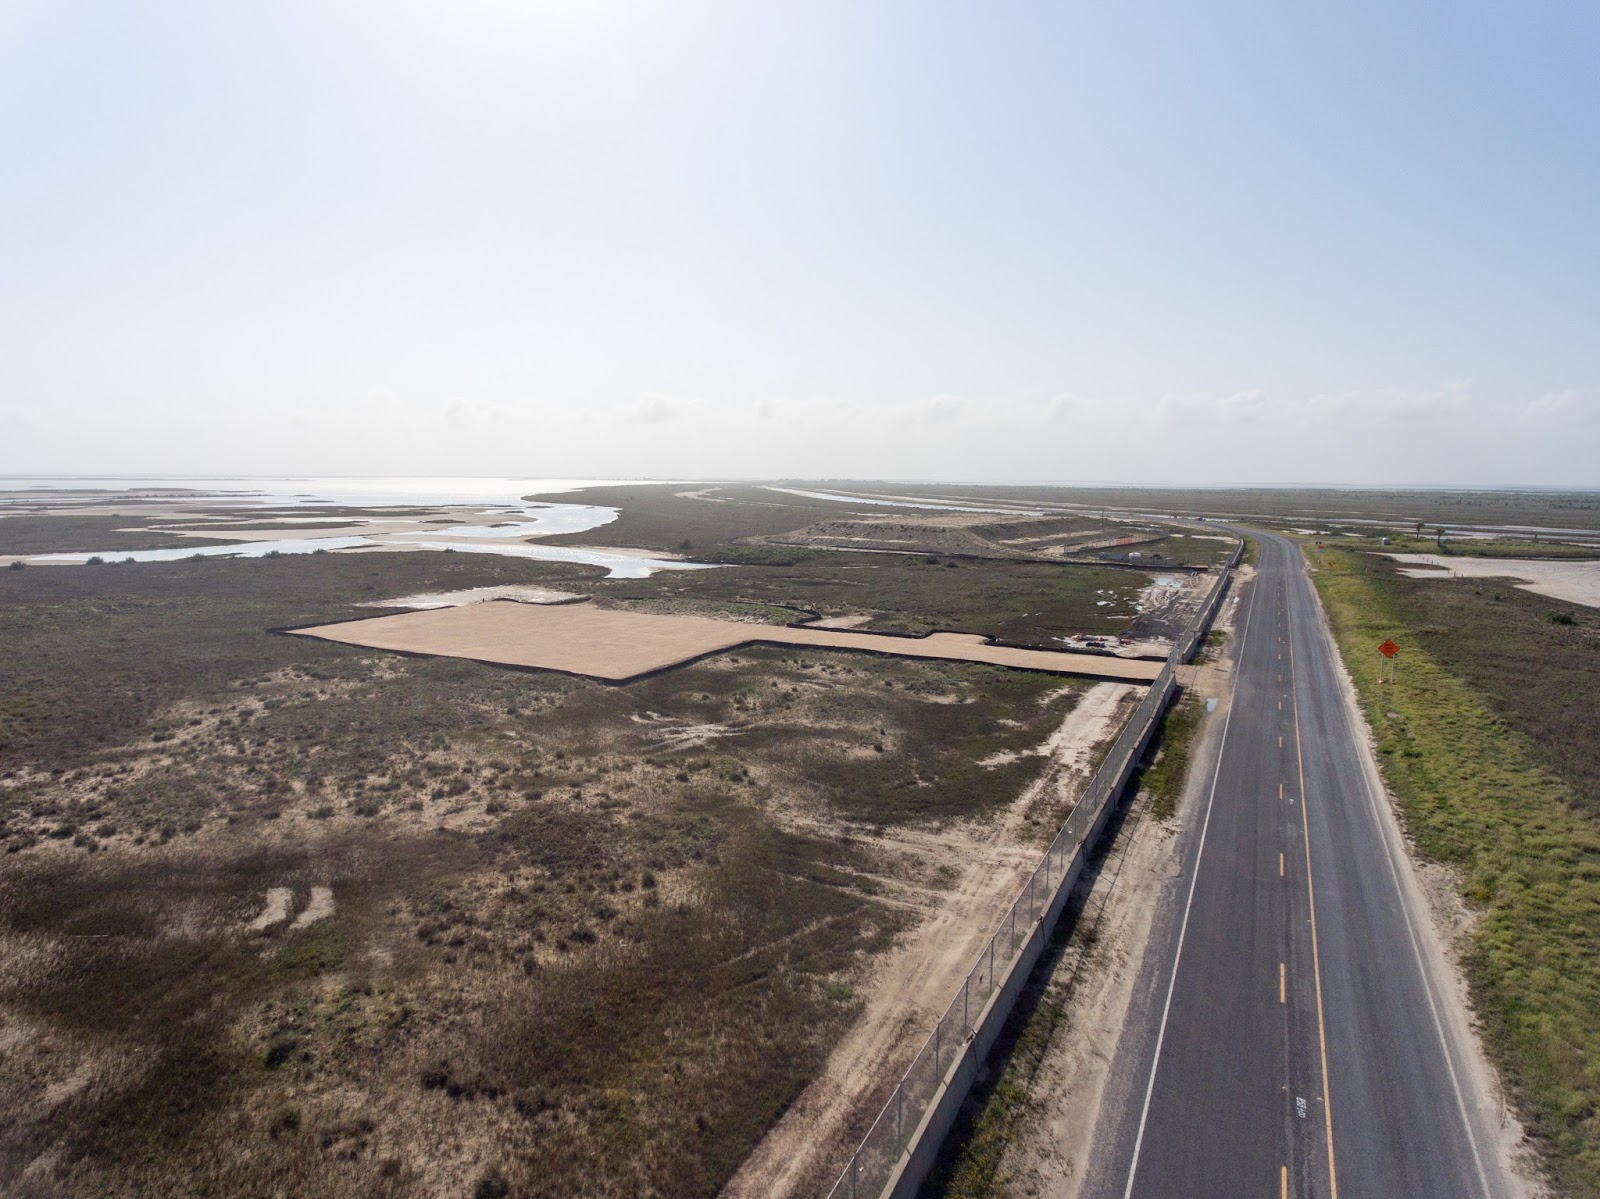 The Brownsville Observer: Is Anything Happening At SpaceX ...